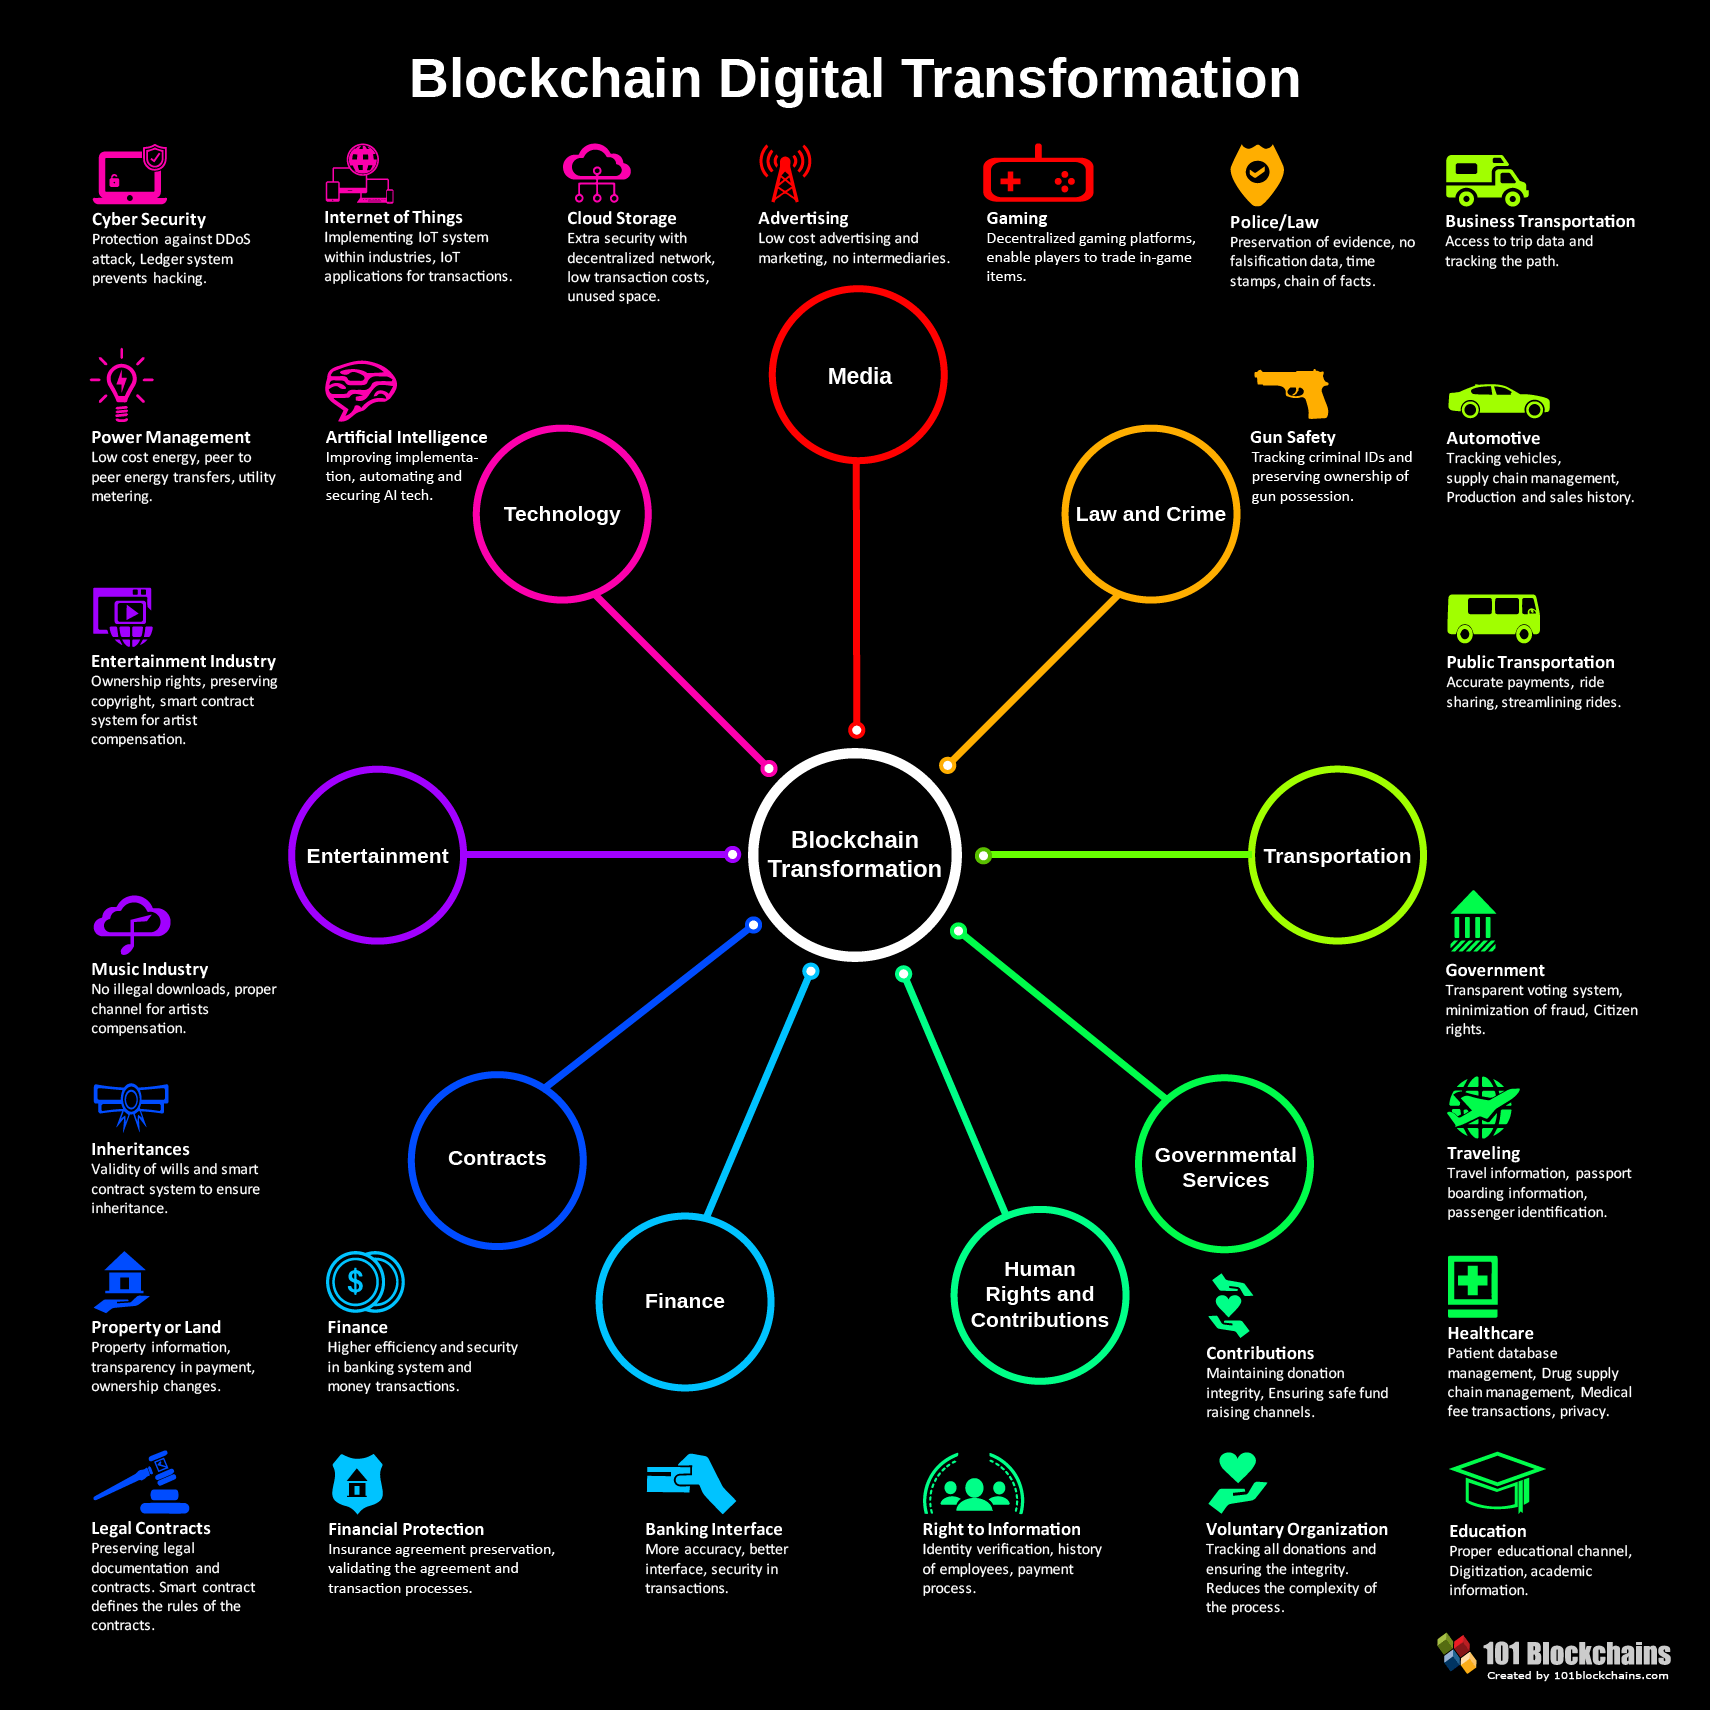 Blockchain Digital Transformation